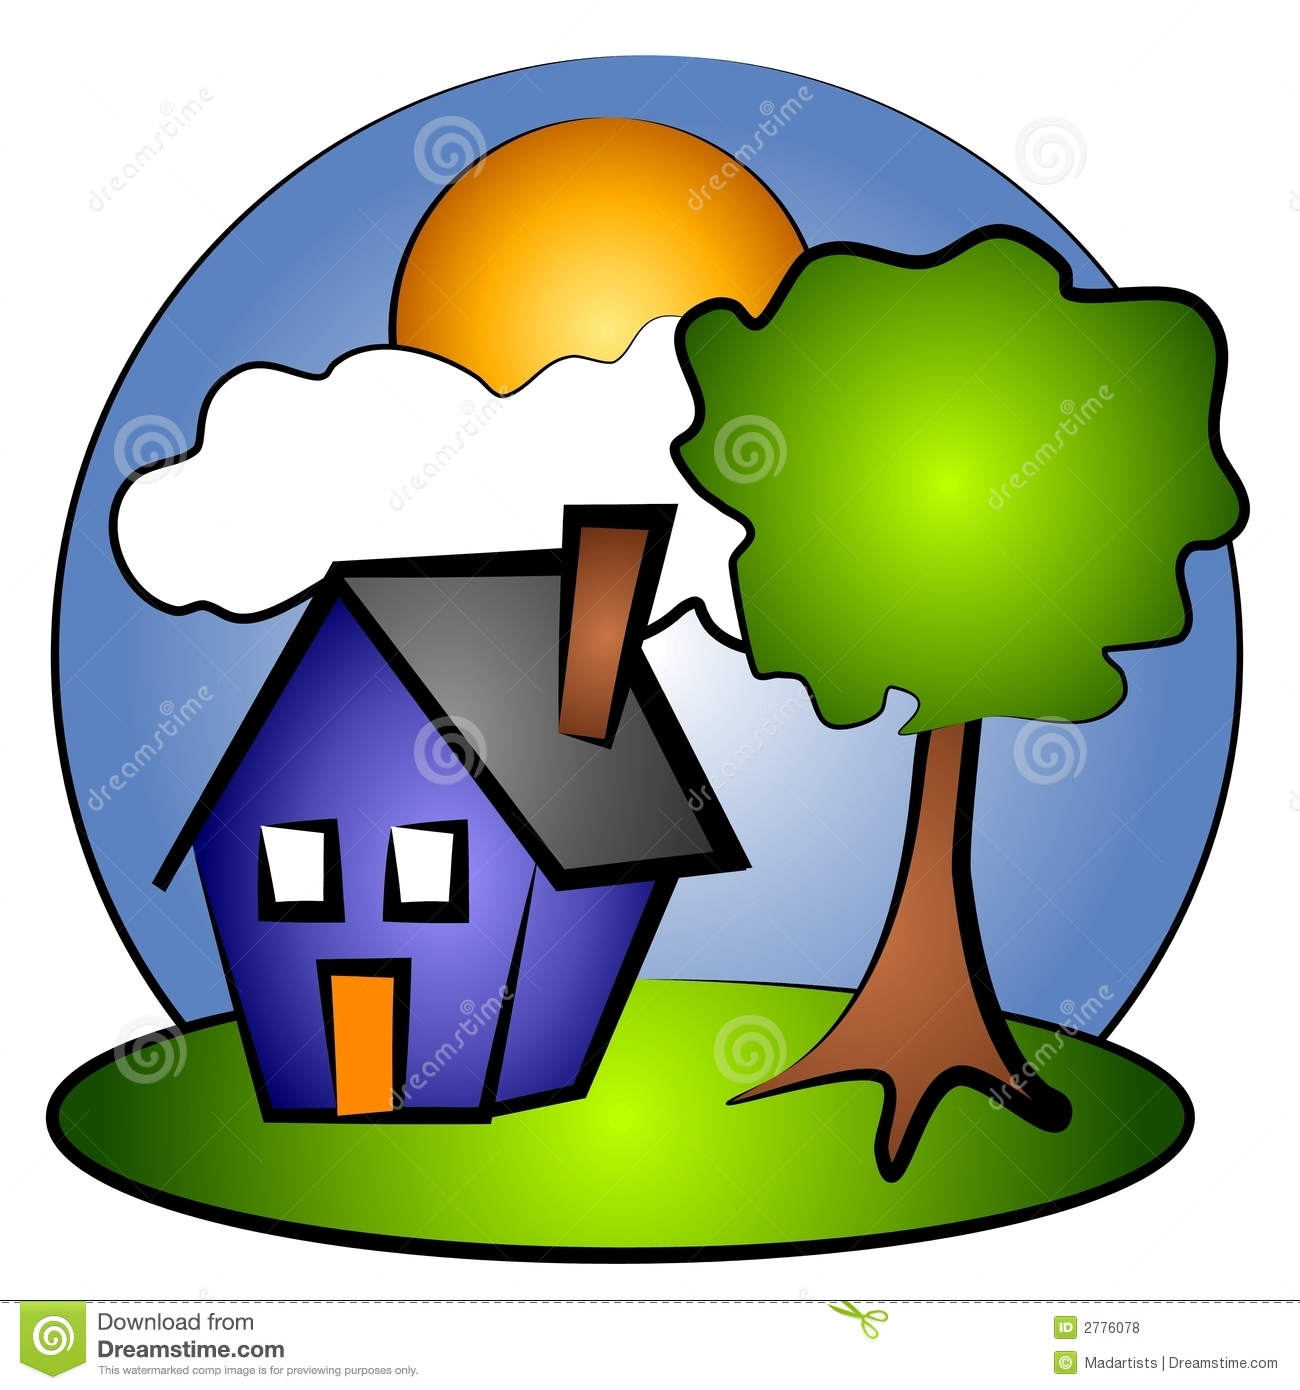 Rural areas clipart.